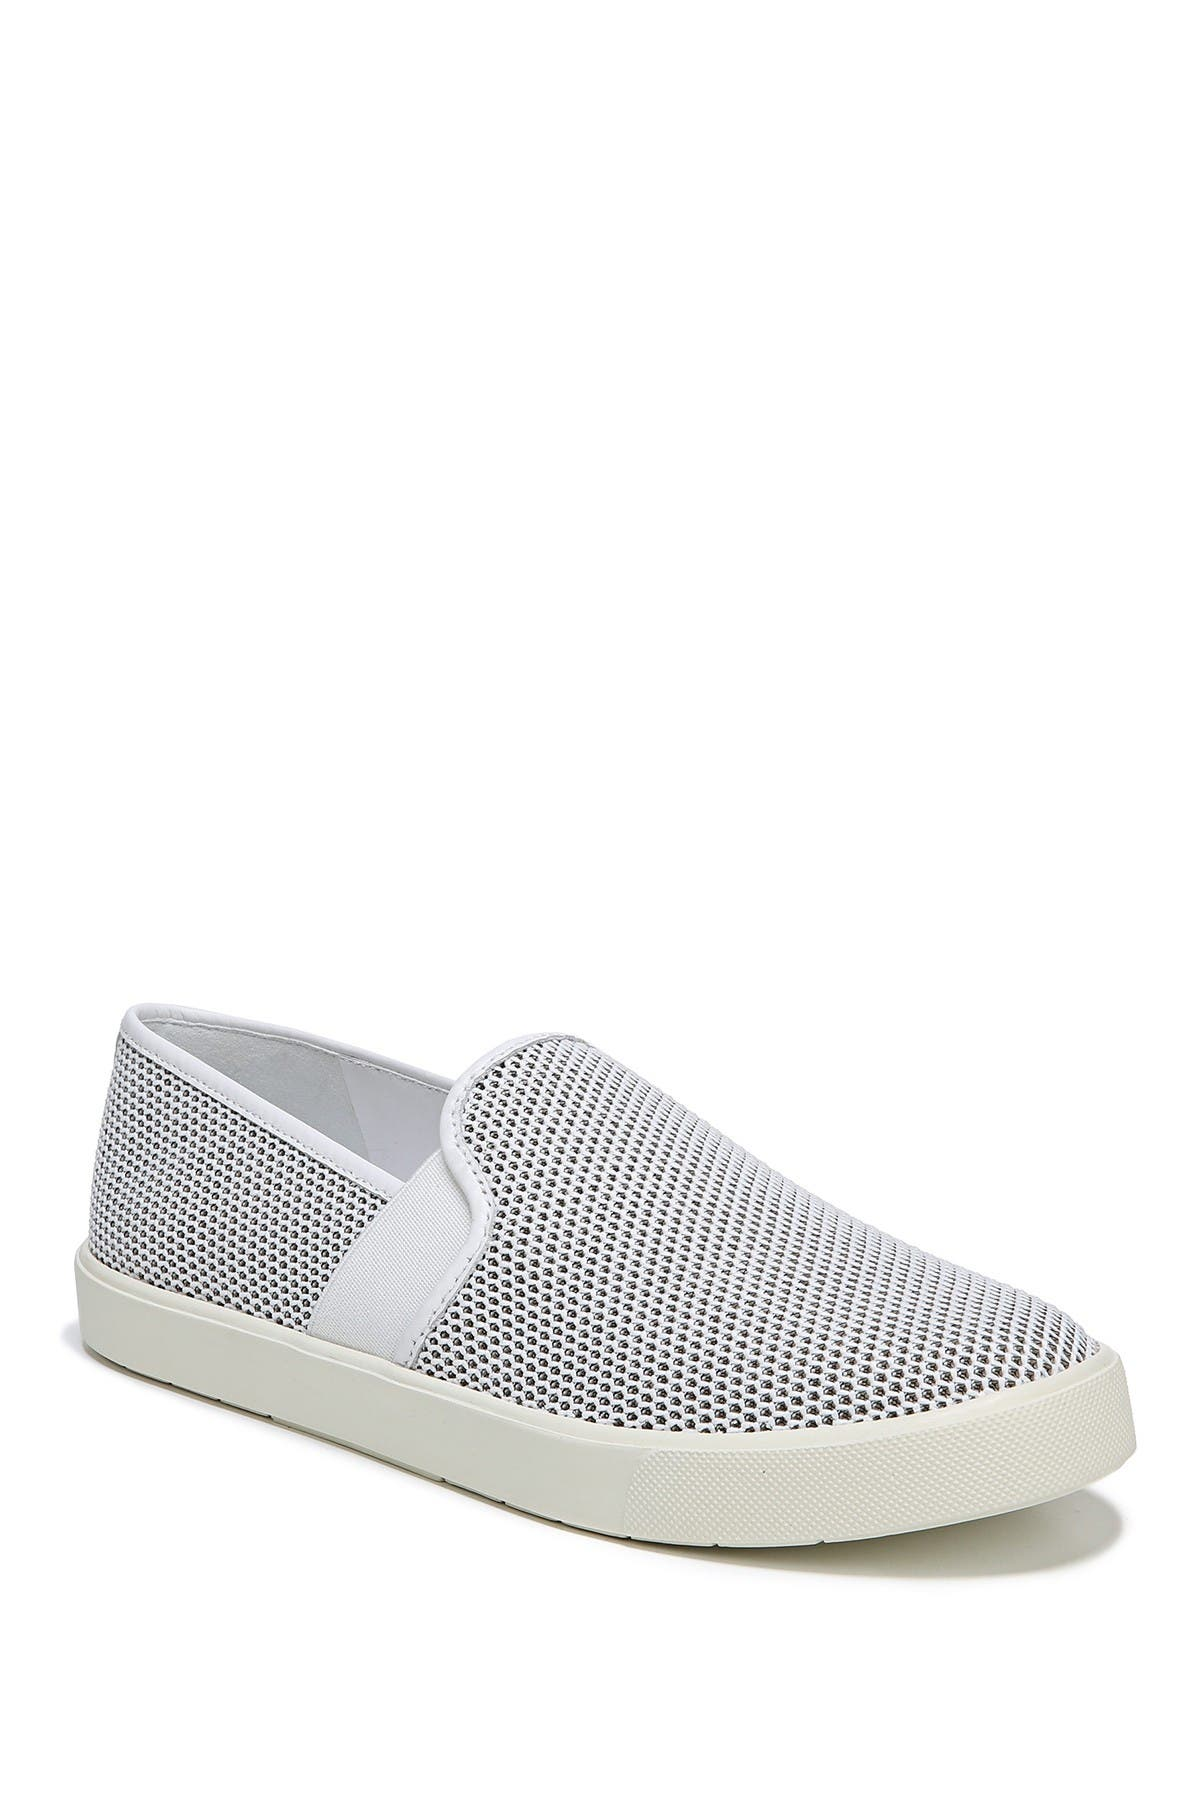 Image of Vince Preston B Perforated Leather Slip-On Sneaker